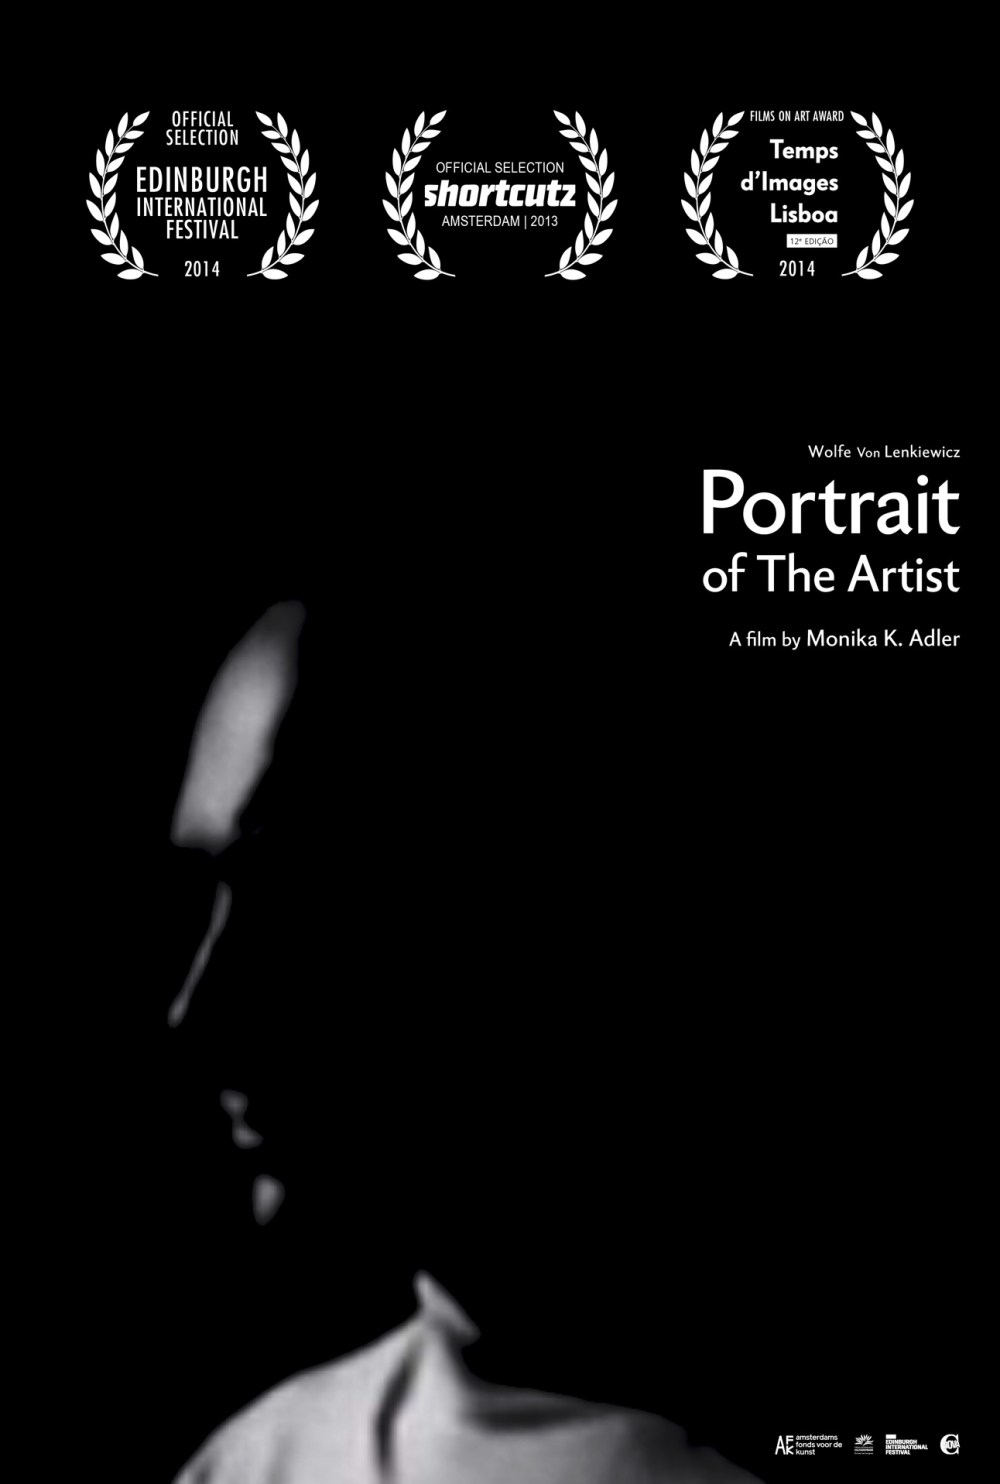 Monika K. Adler, Portrait of the artist, 2013, film poster, Aeon Rose